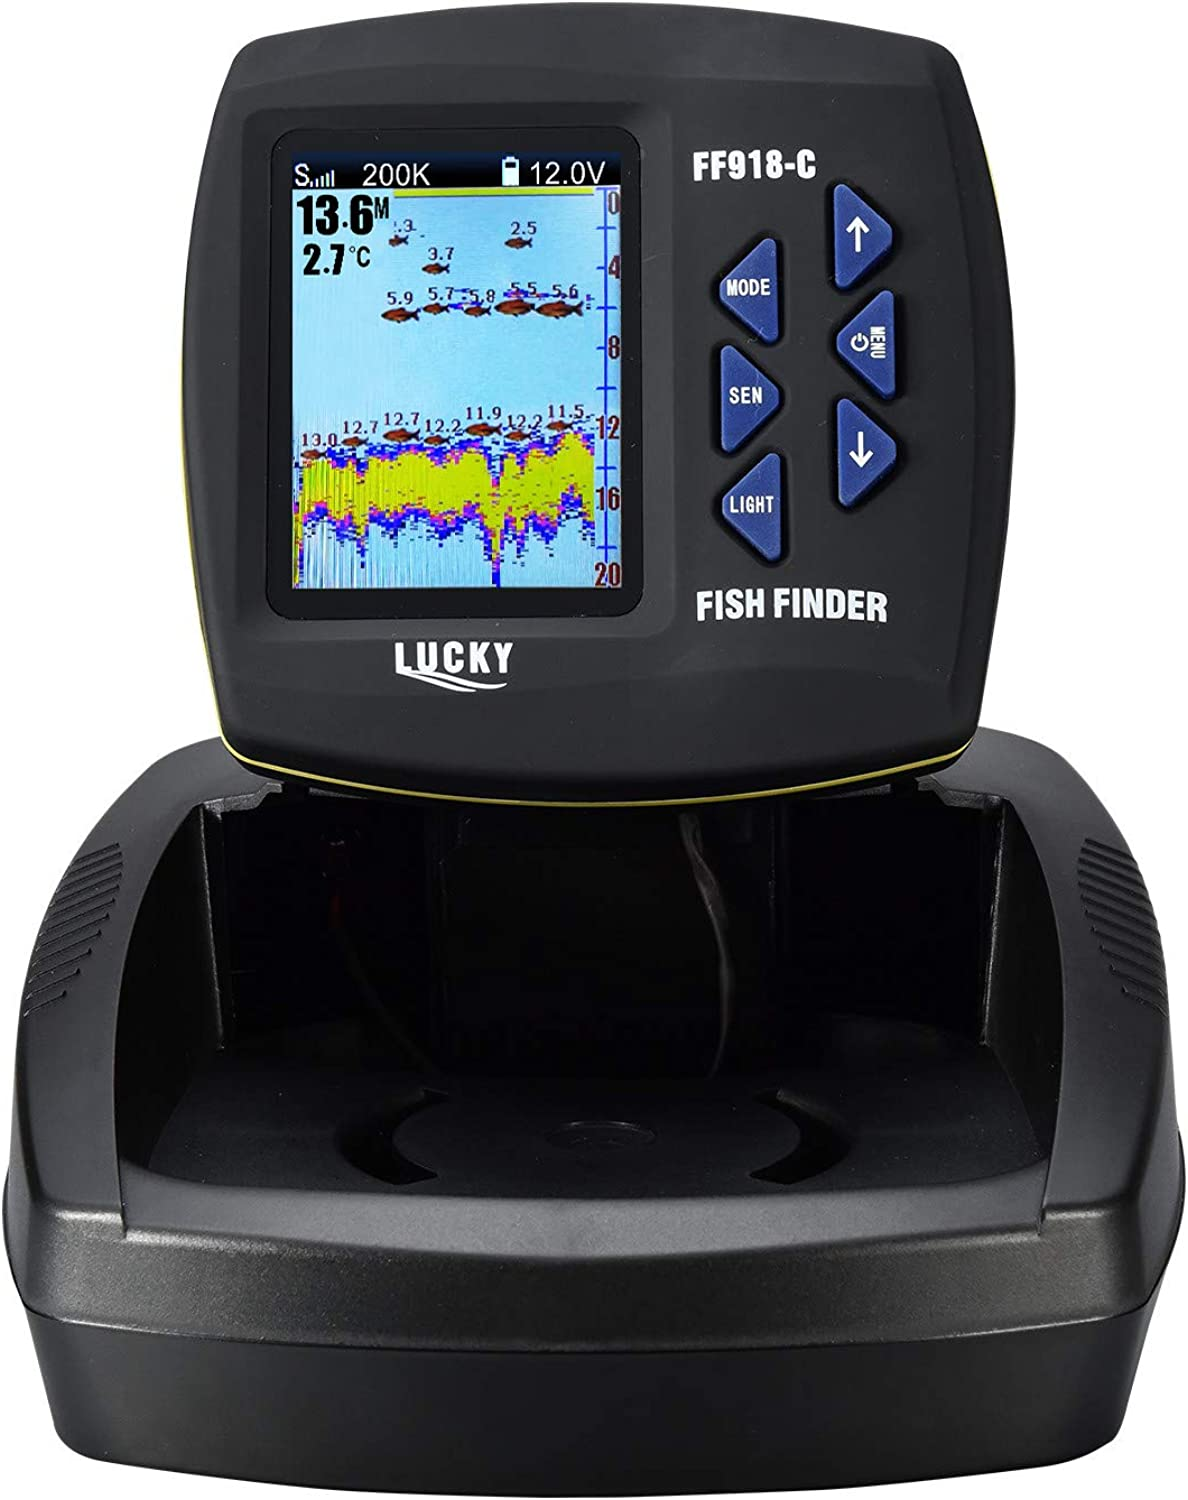 LUCKY Fish Finder for Boat Fishing Kayak Fishing 3.5inch Colour Screen Fishfinder with DualBeam Sonar transducer 180M Detecting Depth